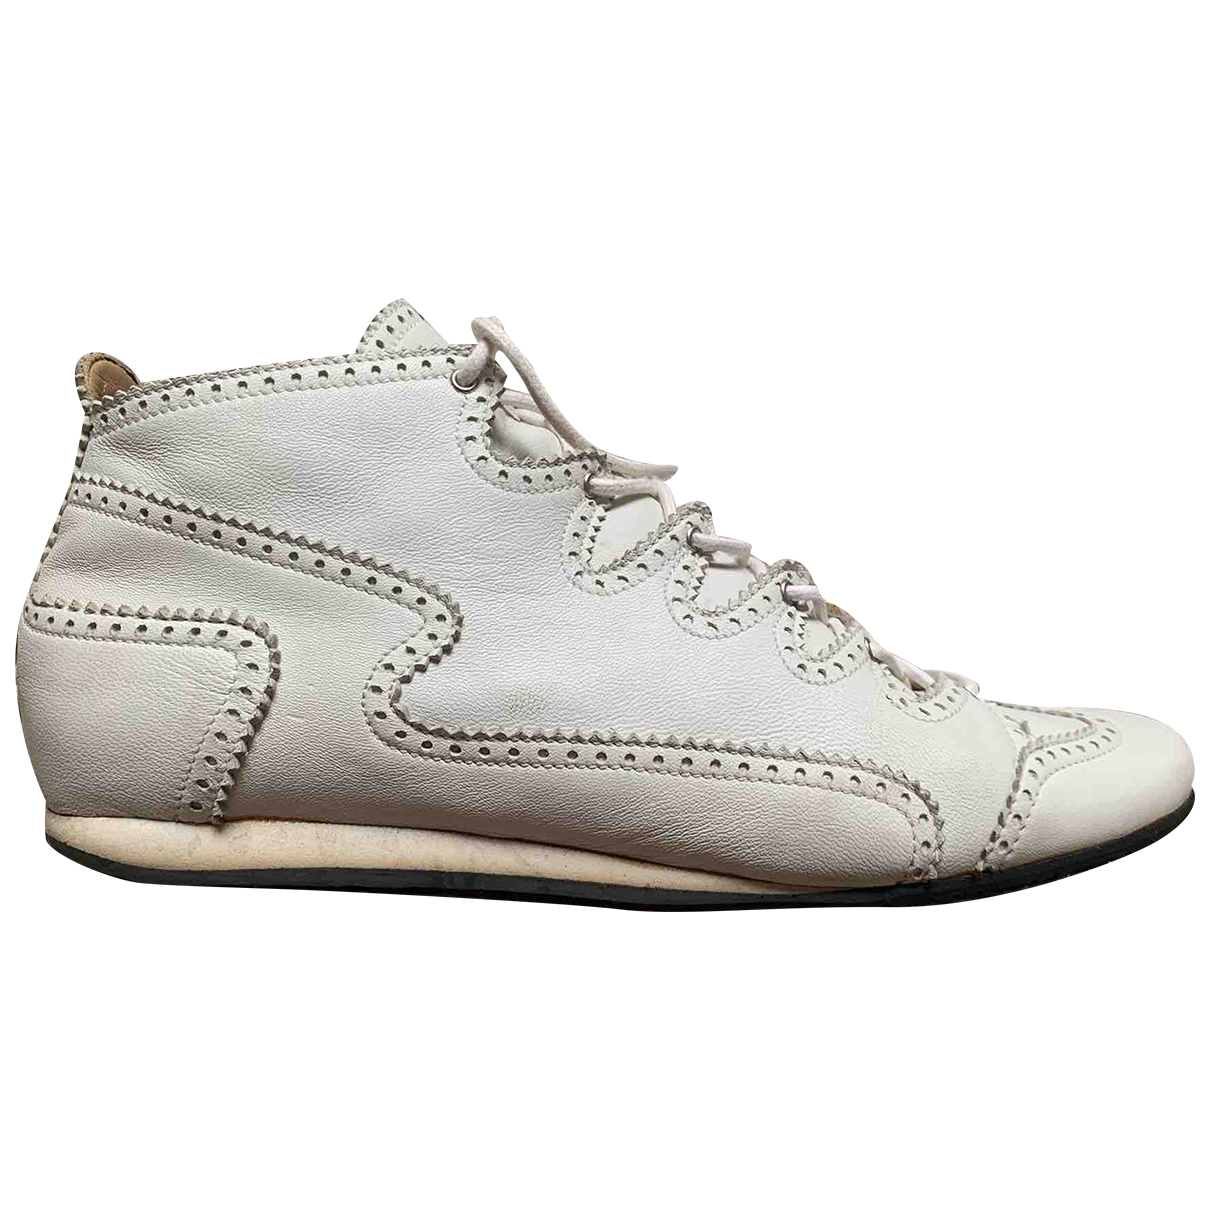 Hermes \N Sneakers in  Weiss Leder